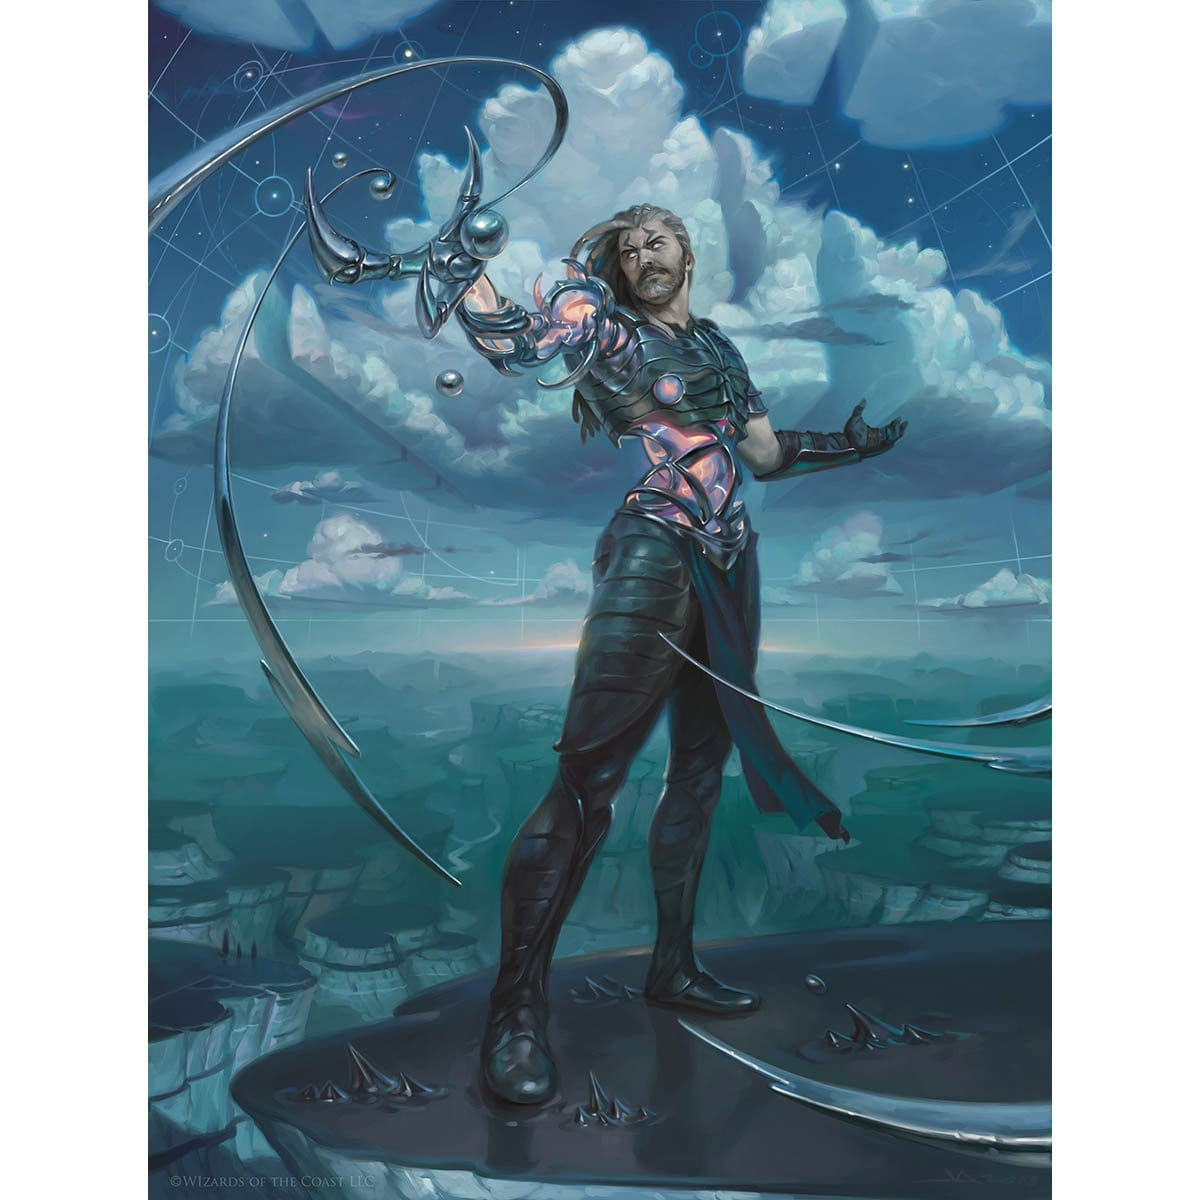 Tezzeret the Seeker Print - Print - Original Magic Art - Accessories for Magic the Gathering and other card games